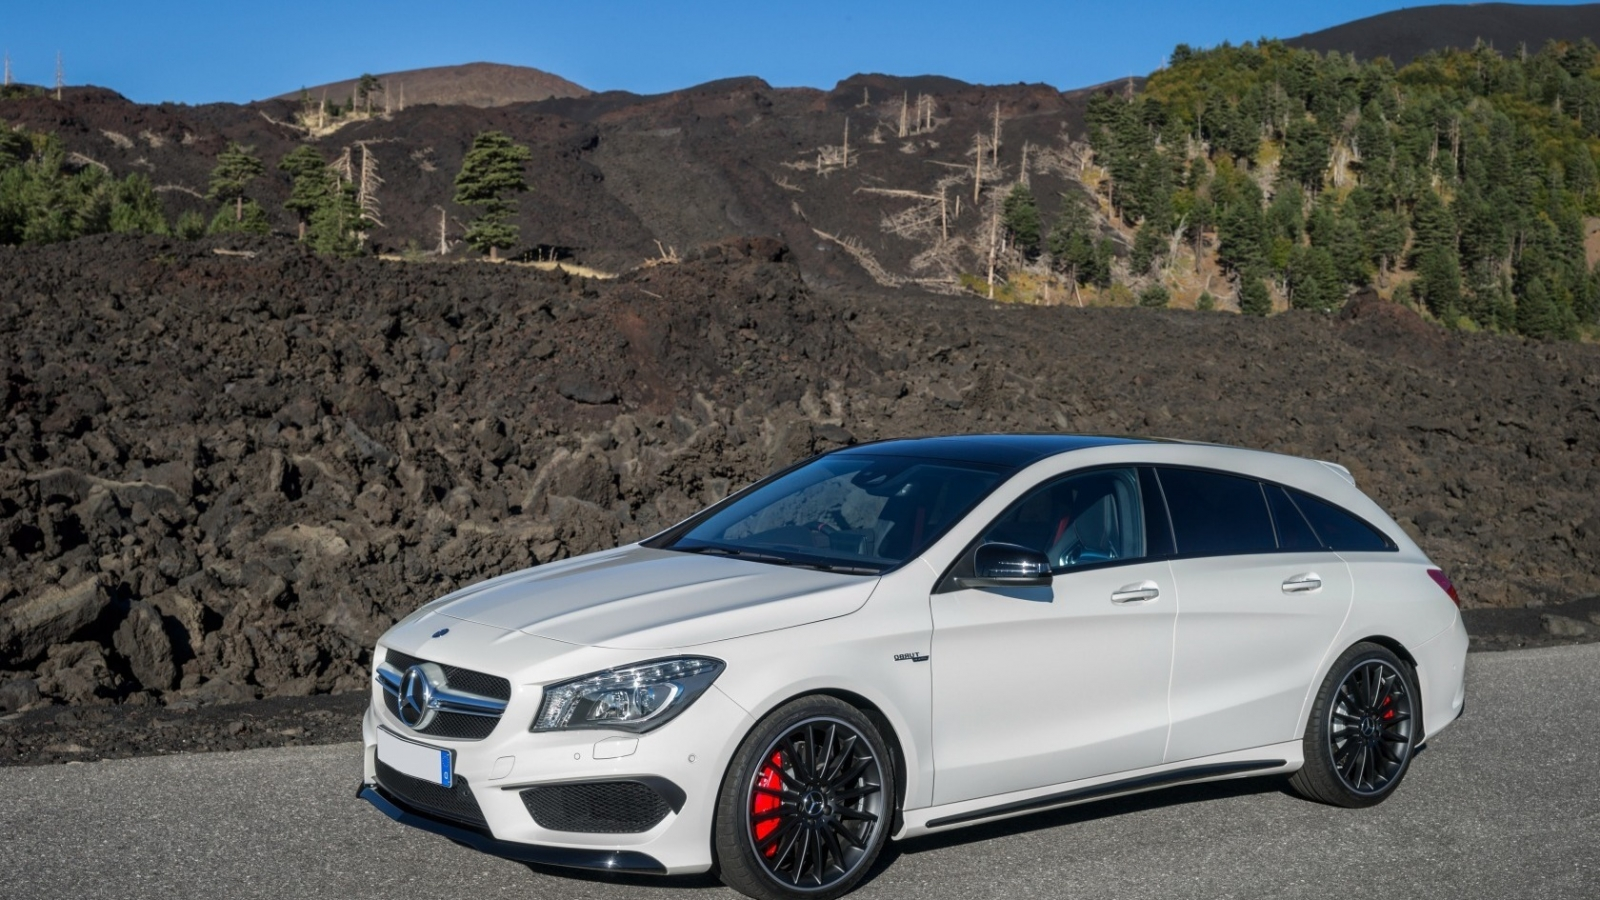 Mercedes Benz CLA 45 AMG for 1600 x 900 HDTV resolution